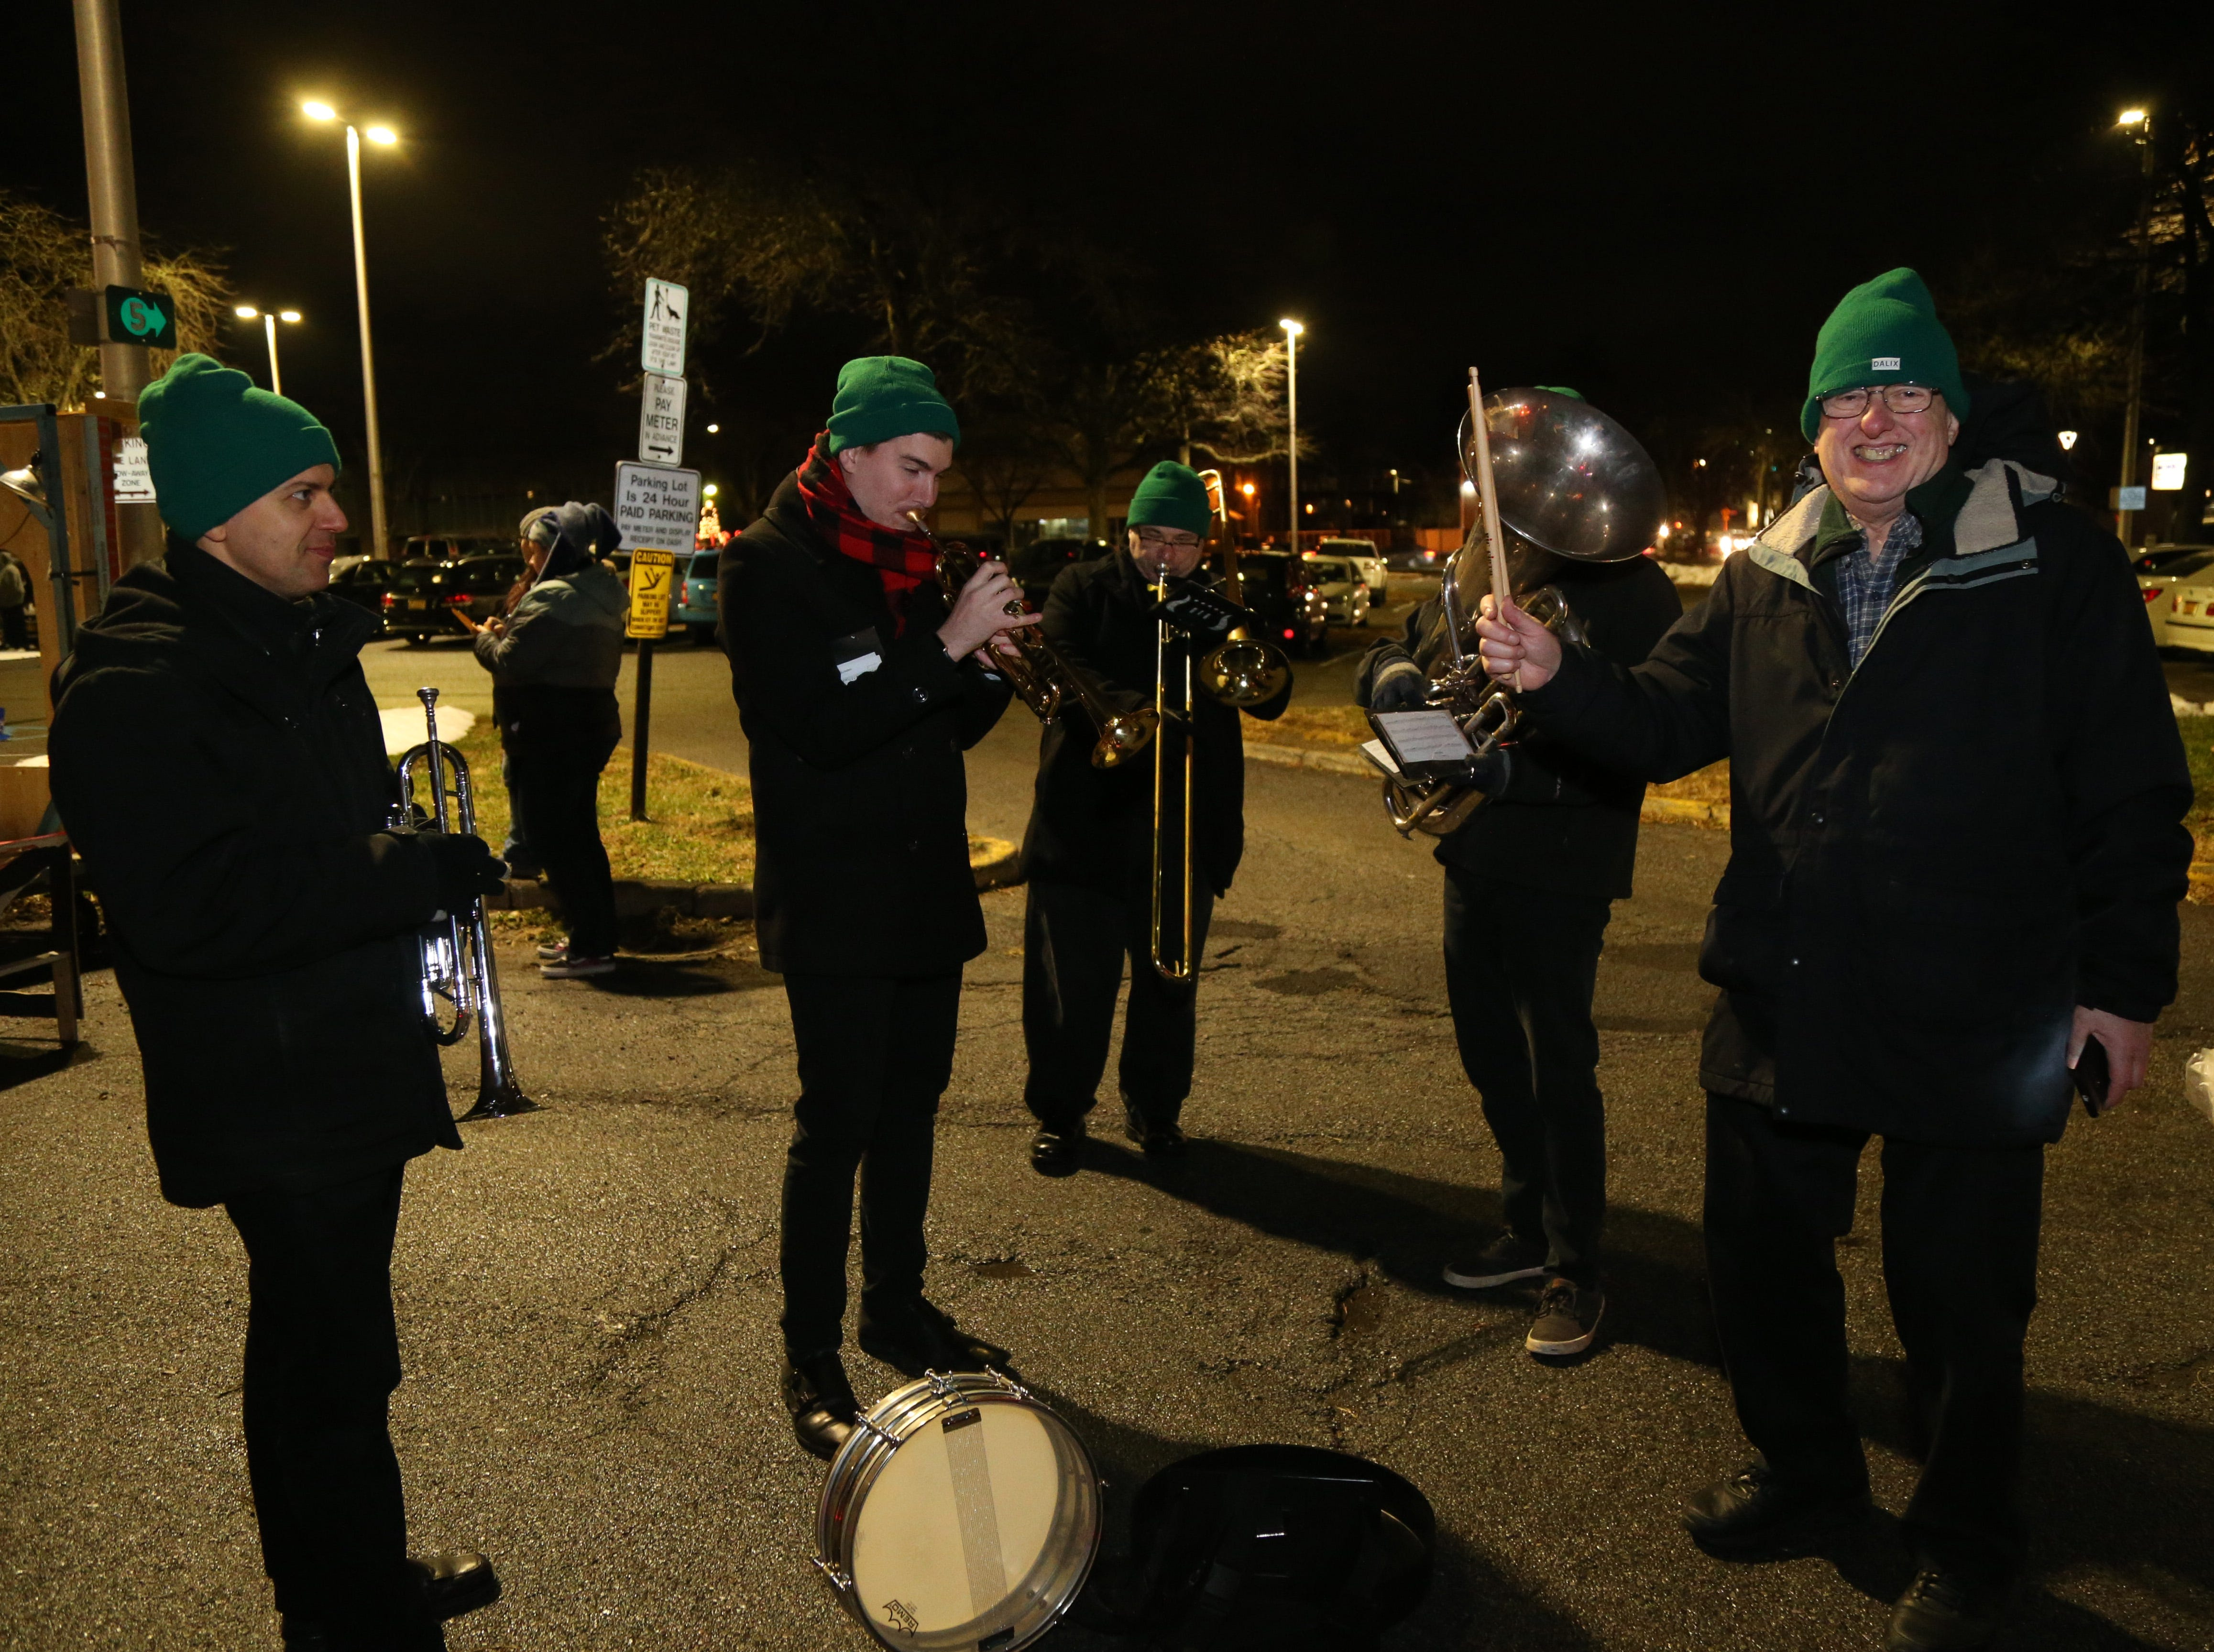 The Wholly Brass Band warm up before the Celebration of Lights in the City of Poughkeepsie on November 30, 2018.